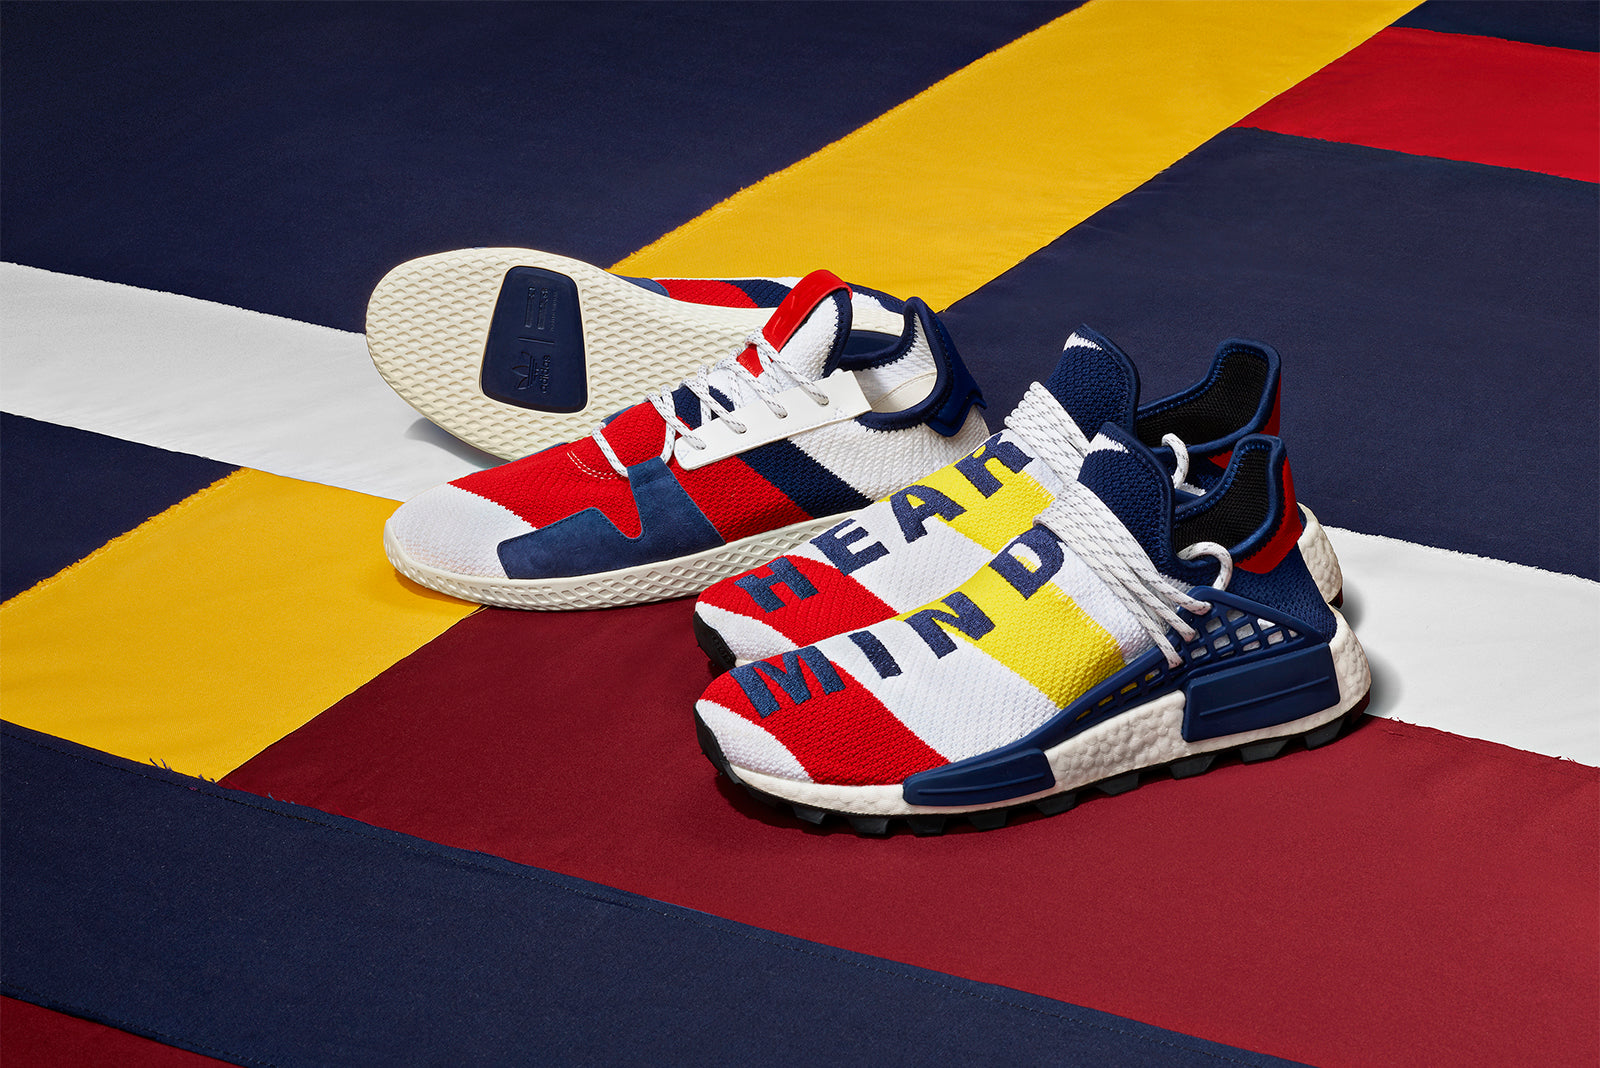 4e2bcff03 adidas Originals and Pharrell Williams continue their collaborative  partnership with the third instalment of the adidas Originals by Billionaire  Boys Club ...